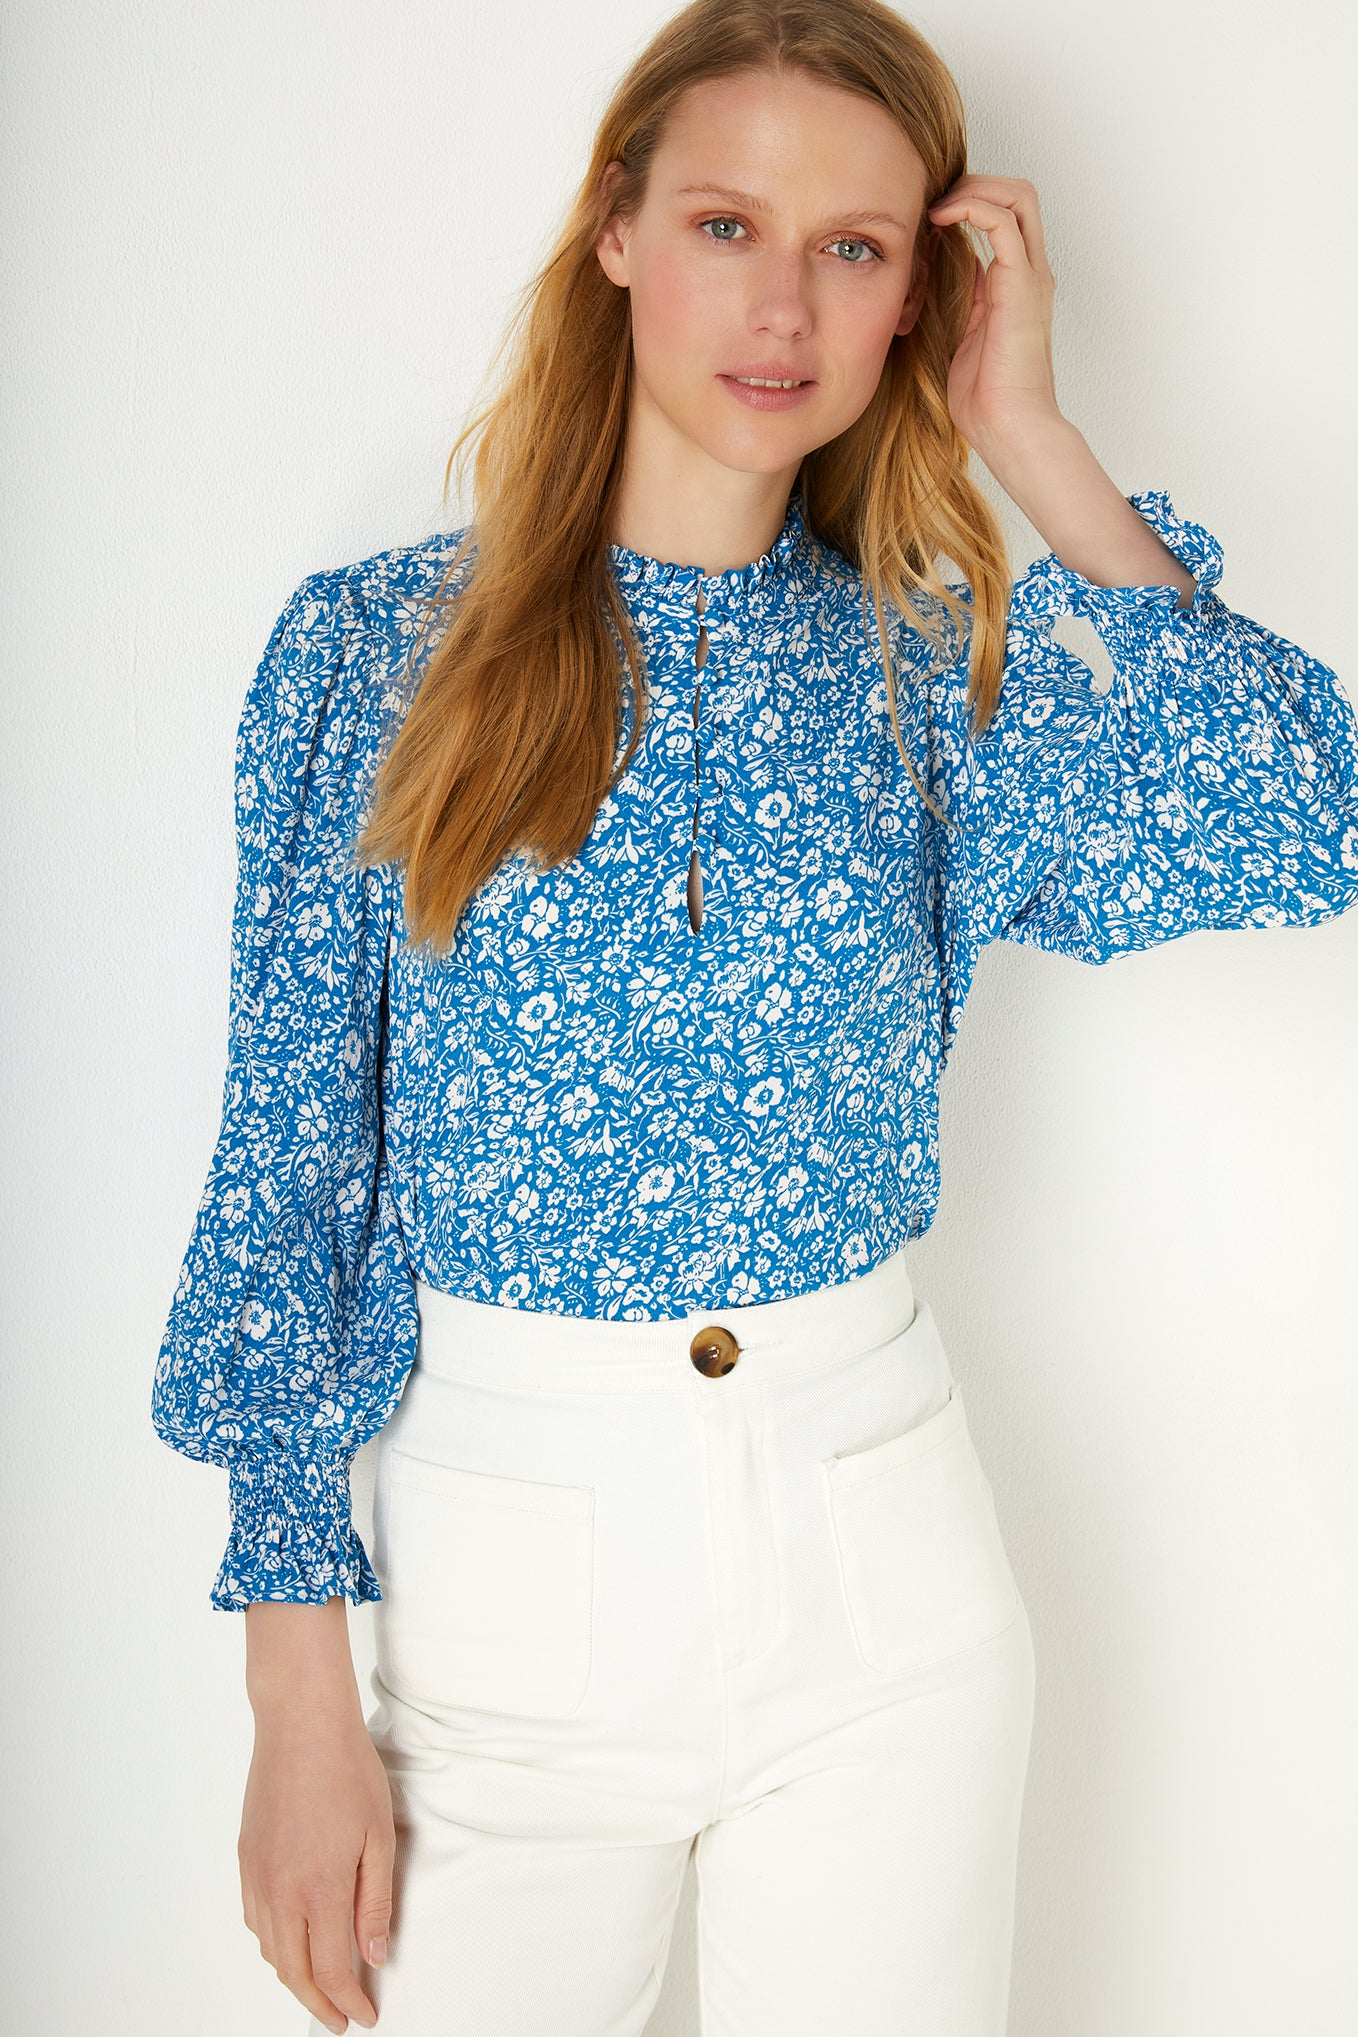 Theresa Two-Tone Floral Print Blouse - Blue